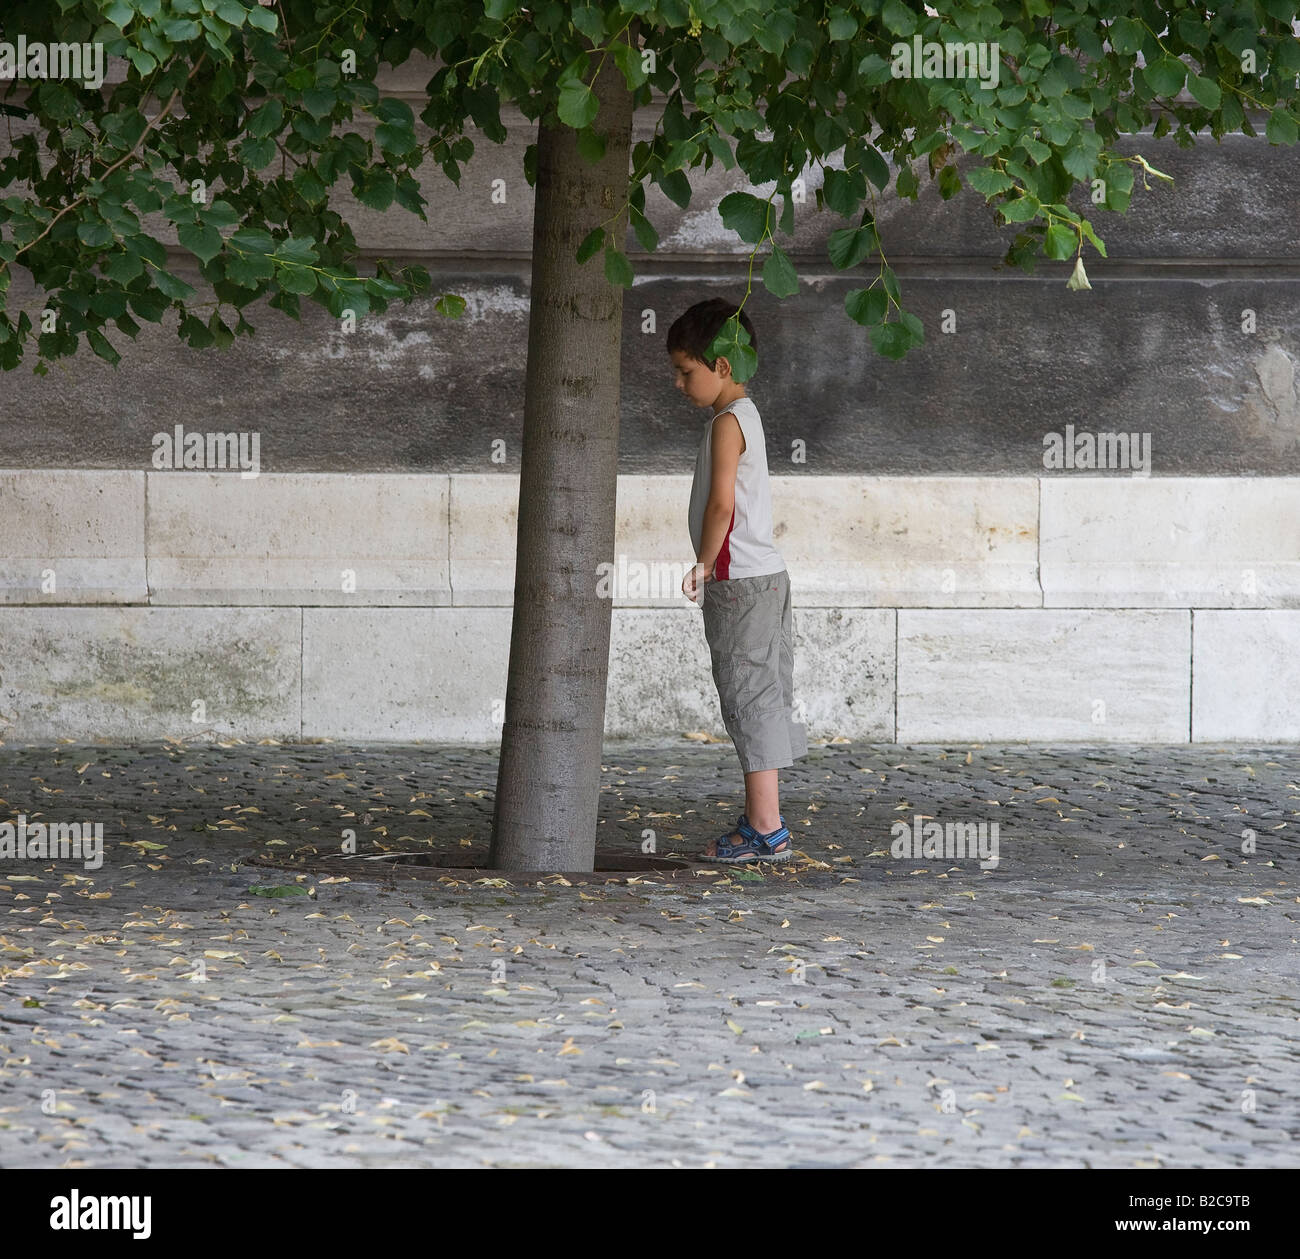 India child Pissing boy pissing against tree - Stock Image